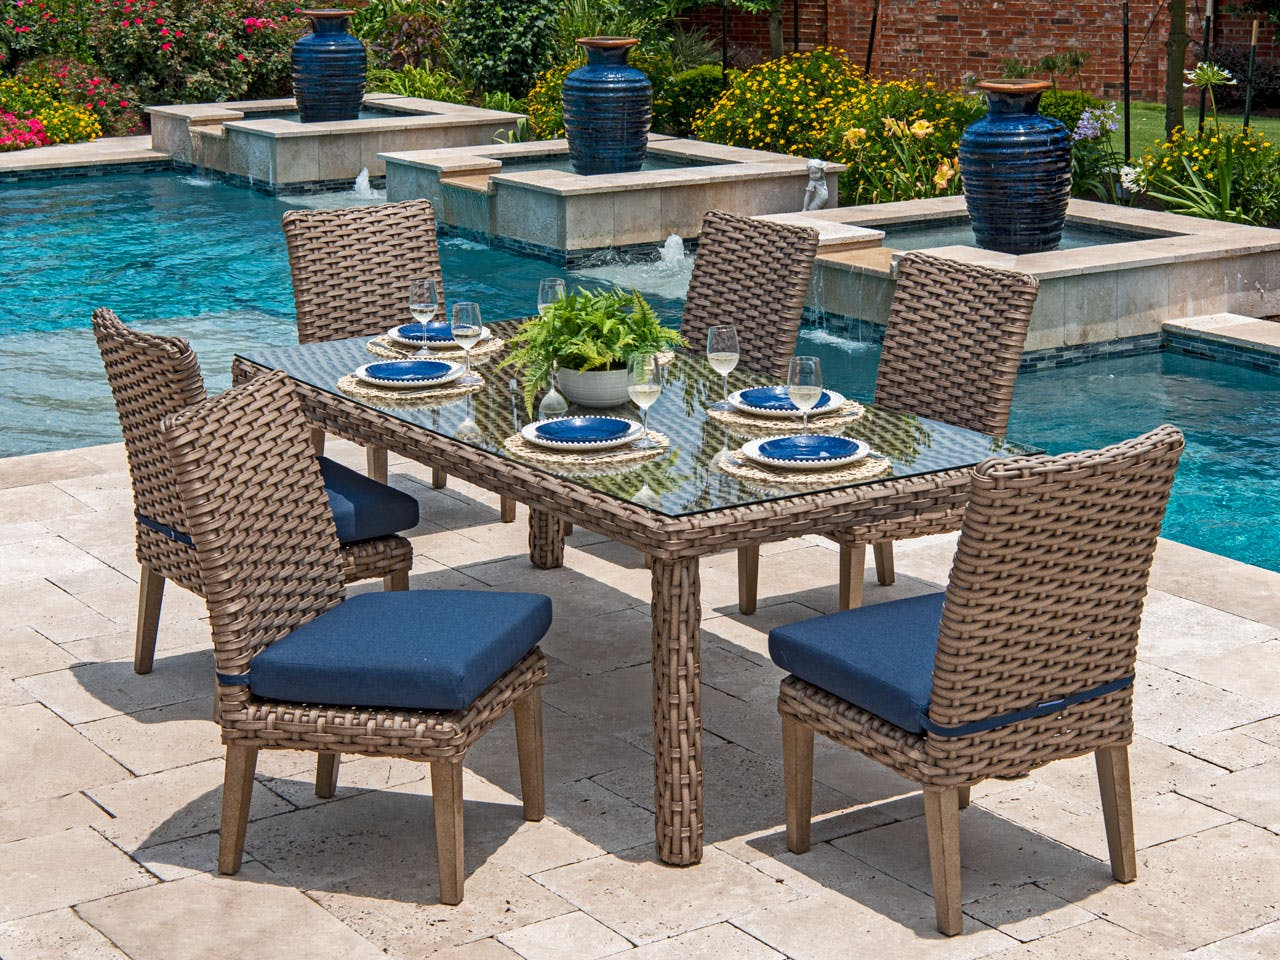 Aged Teak Outdoor Furniture Home Designs Inspiration